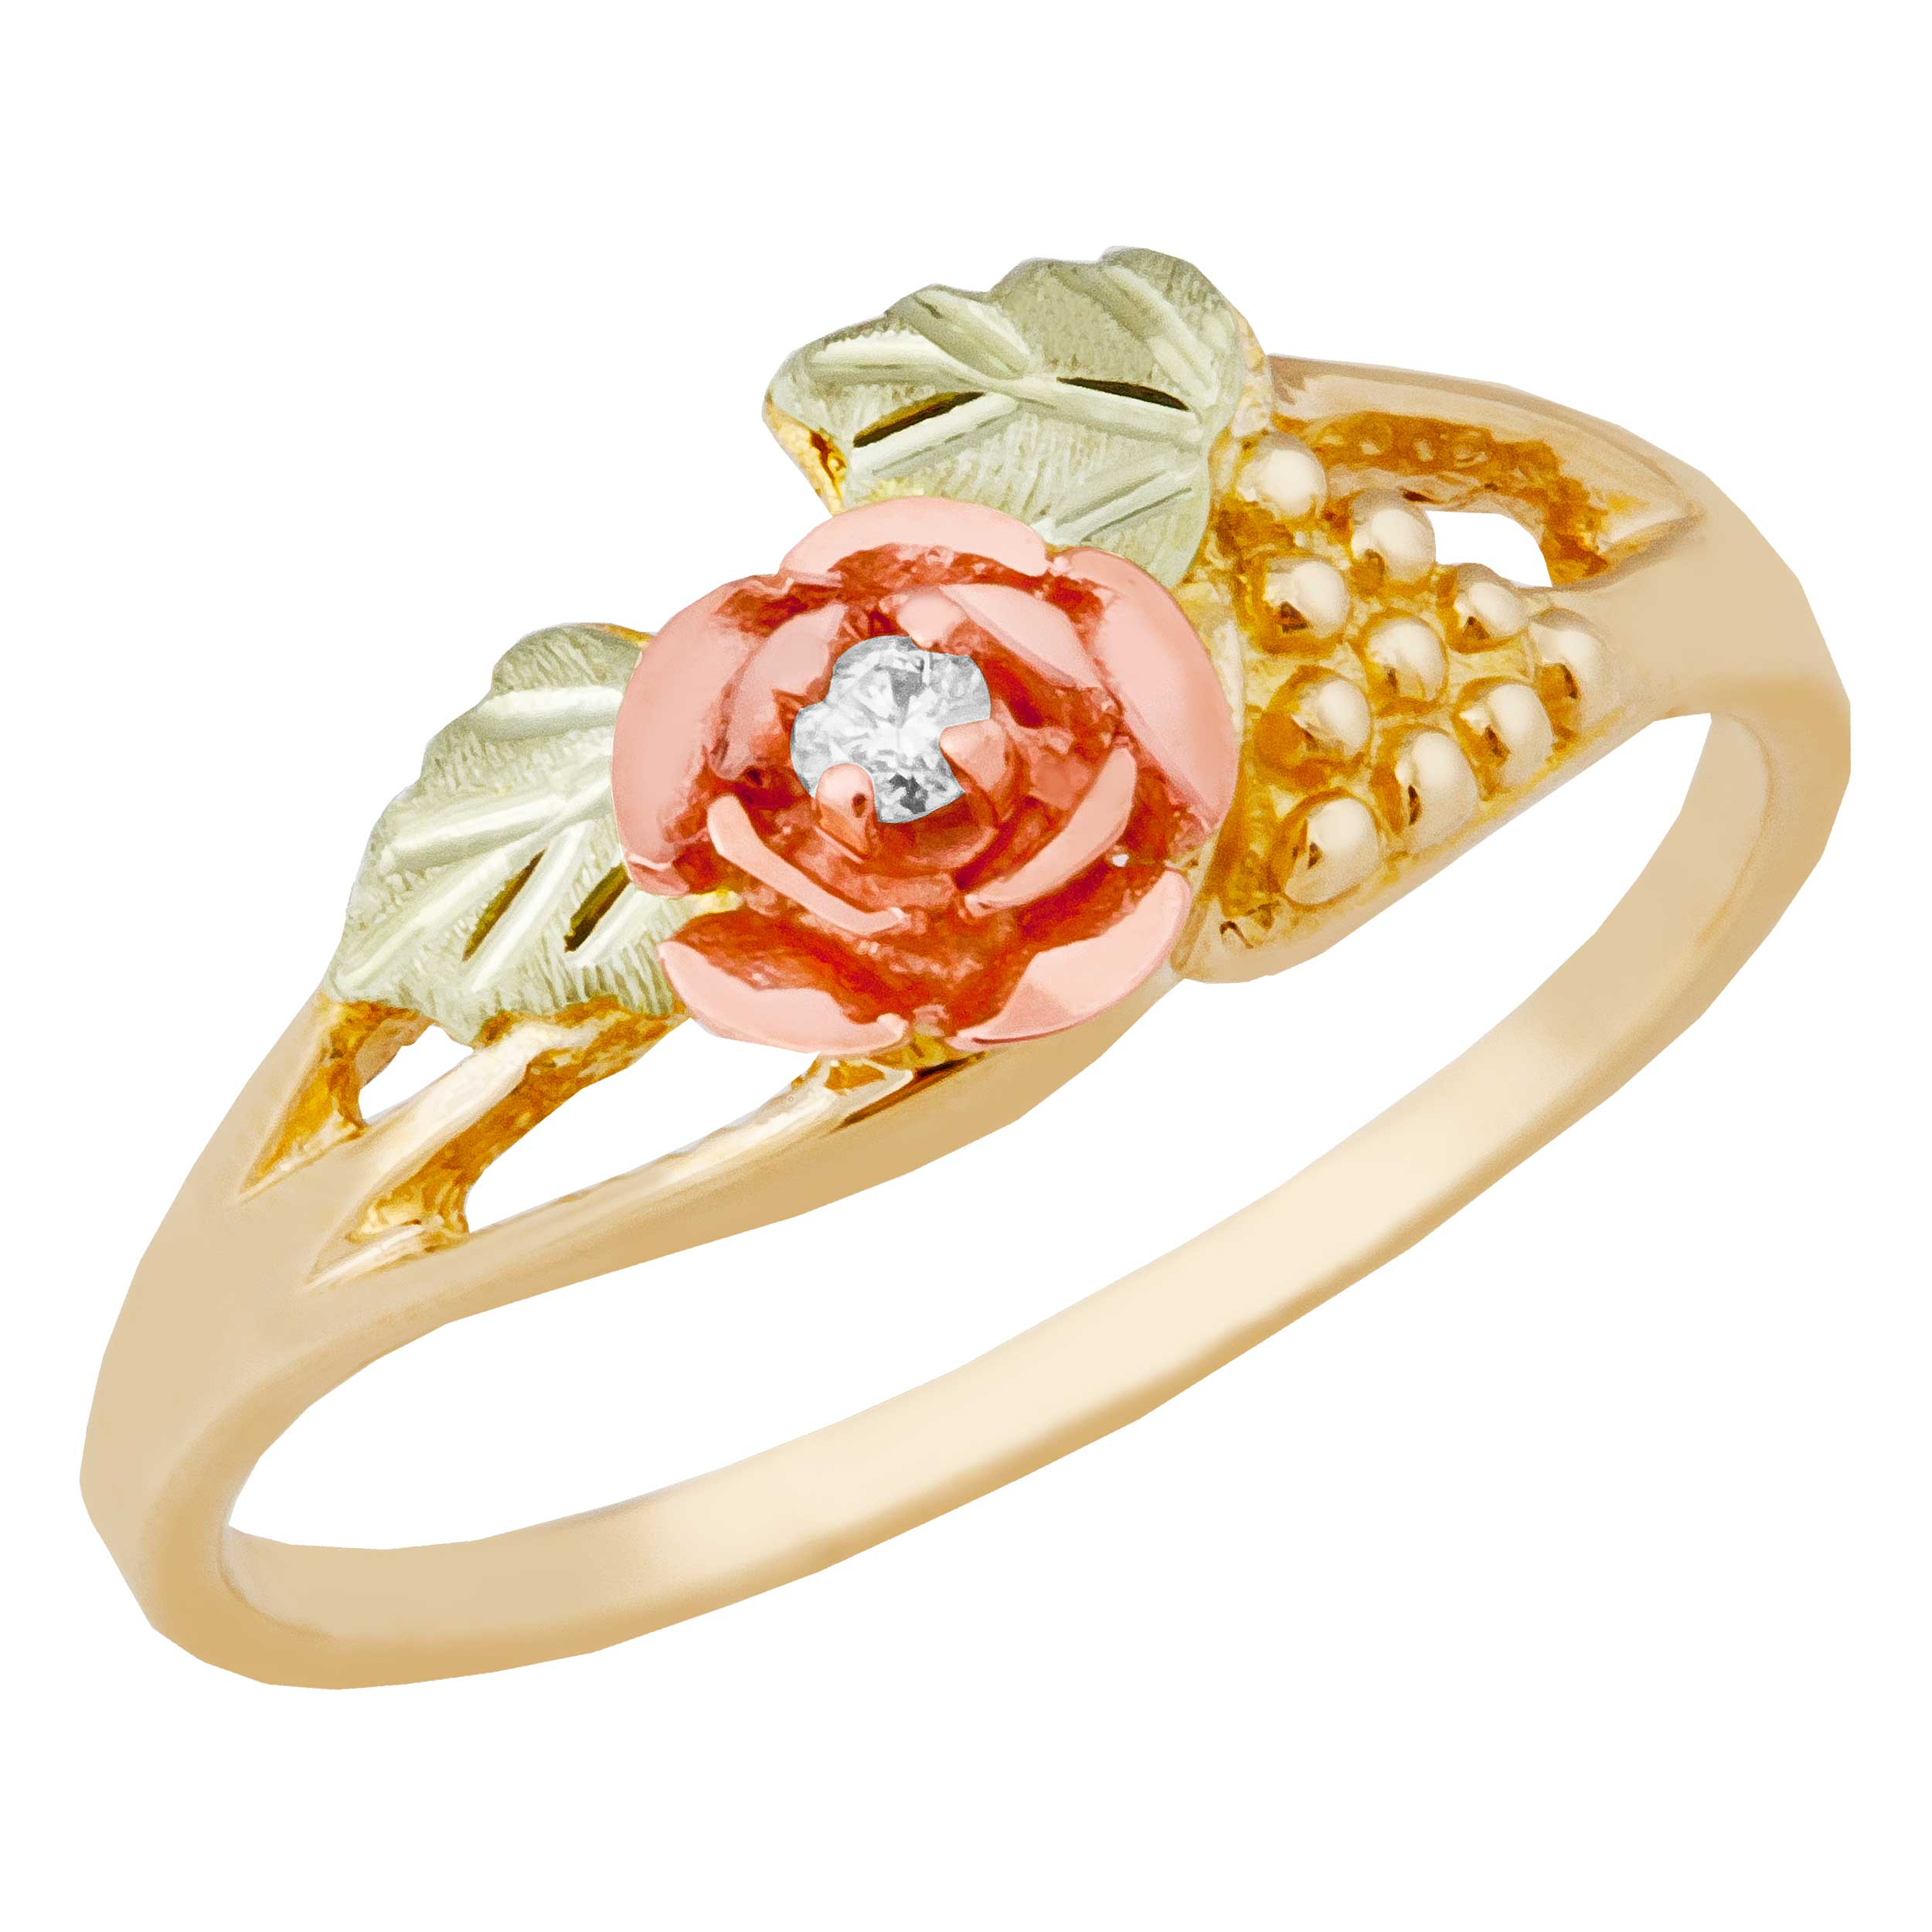 jewelry satine fine rings mamaroneck category diamond ring yellow york gold product new orange shop zaltas